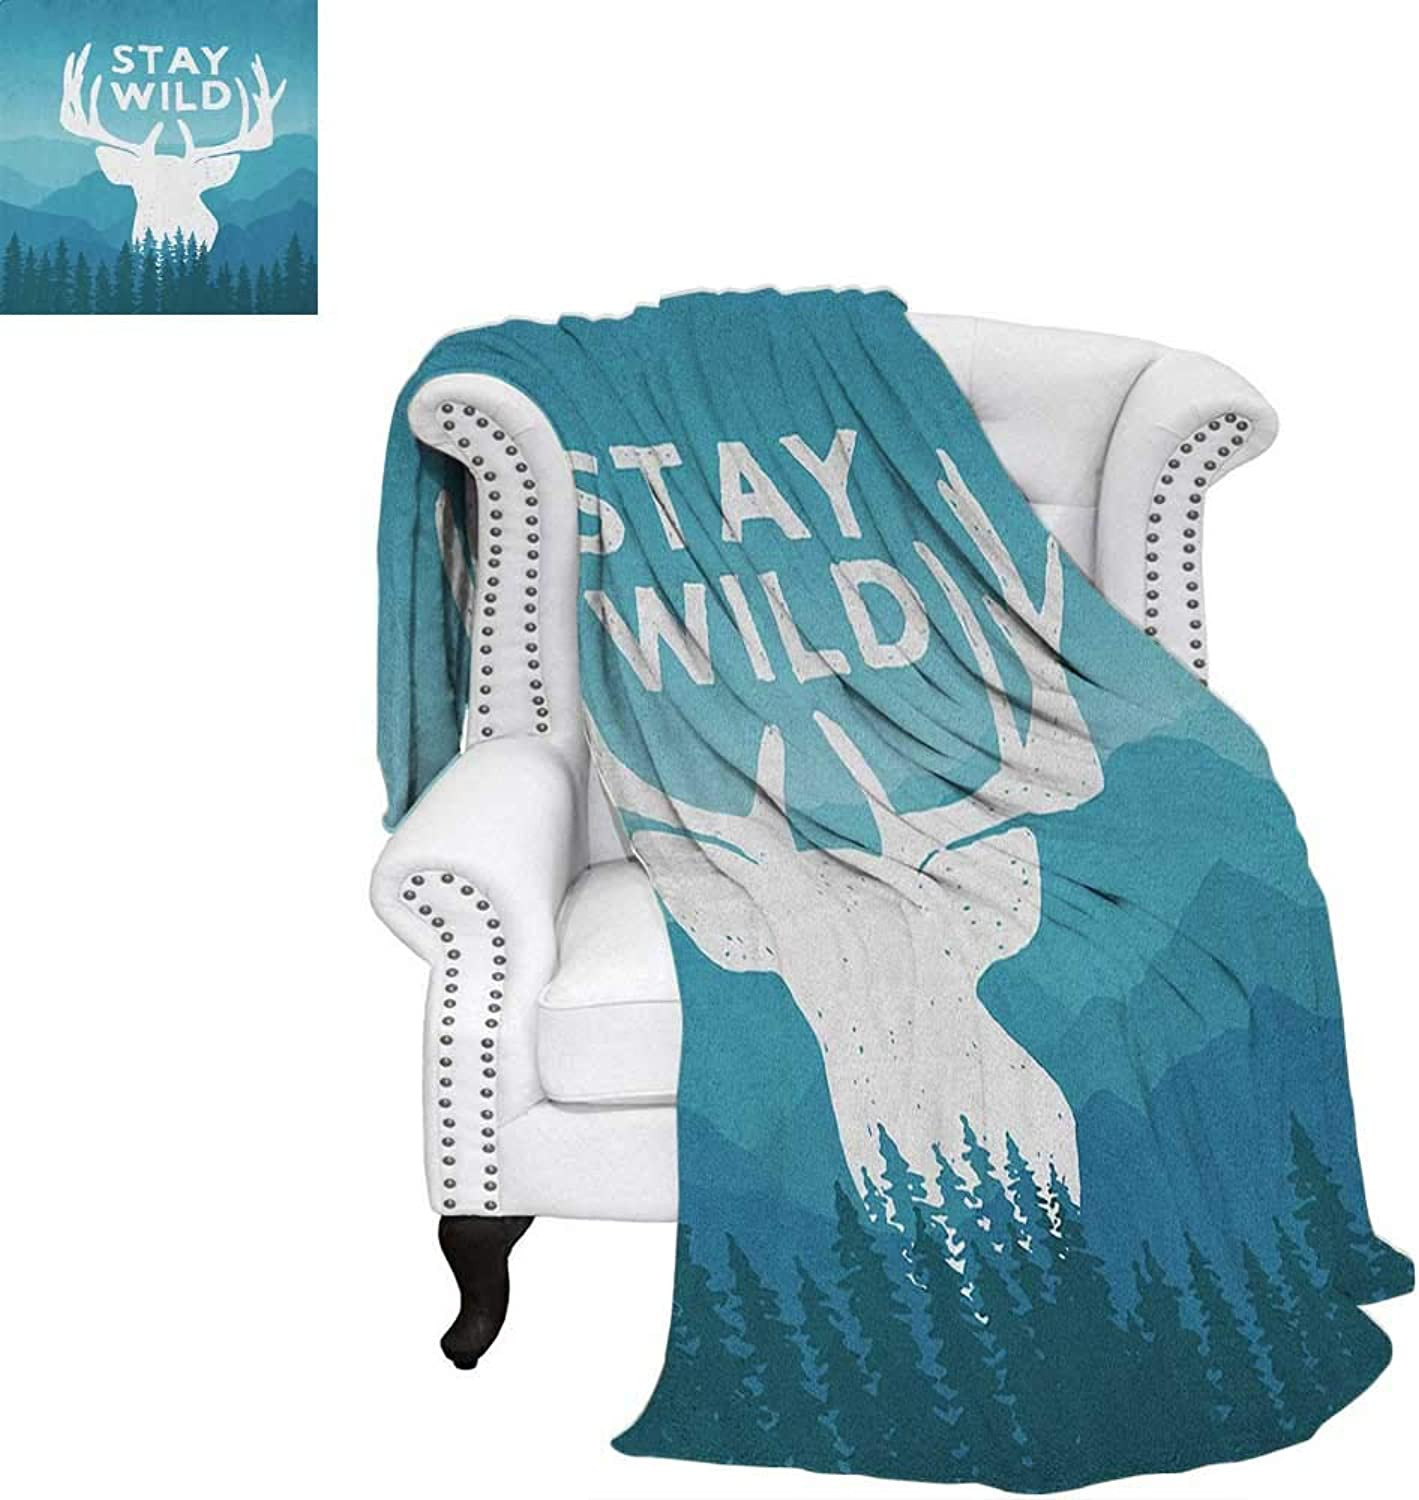 Adventurefluffy blanketWilderness Themed Stay Wild Quote with Scenic Mountain Backdrop Forestbed Blanket 60 x50  Baby bluee Dark bluee